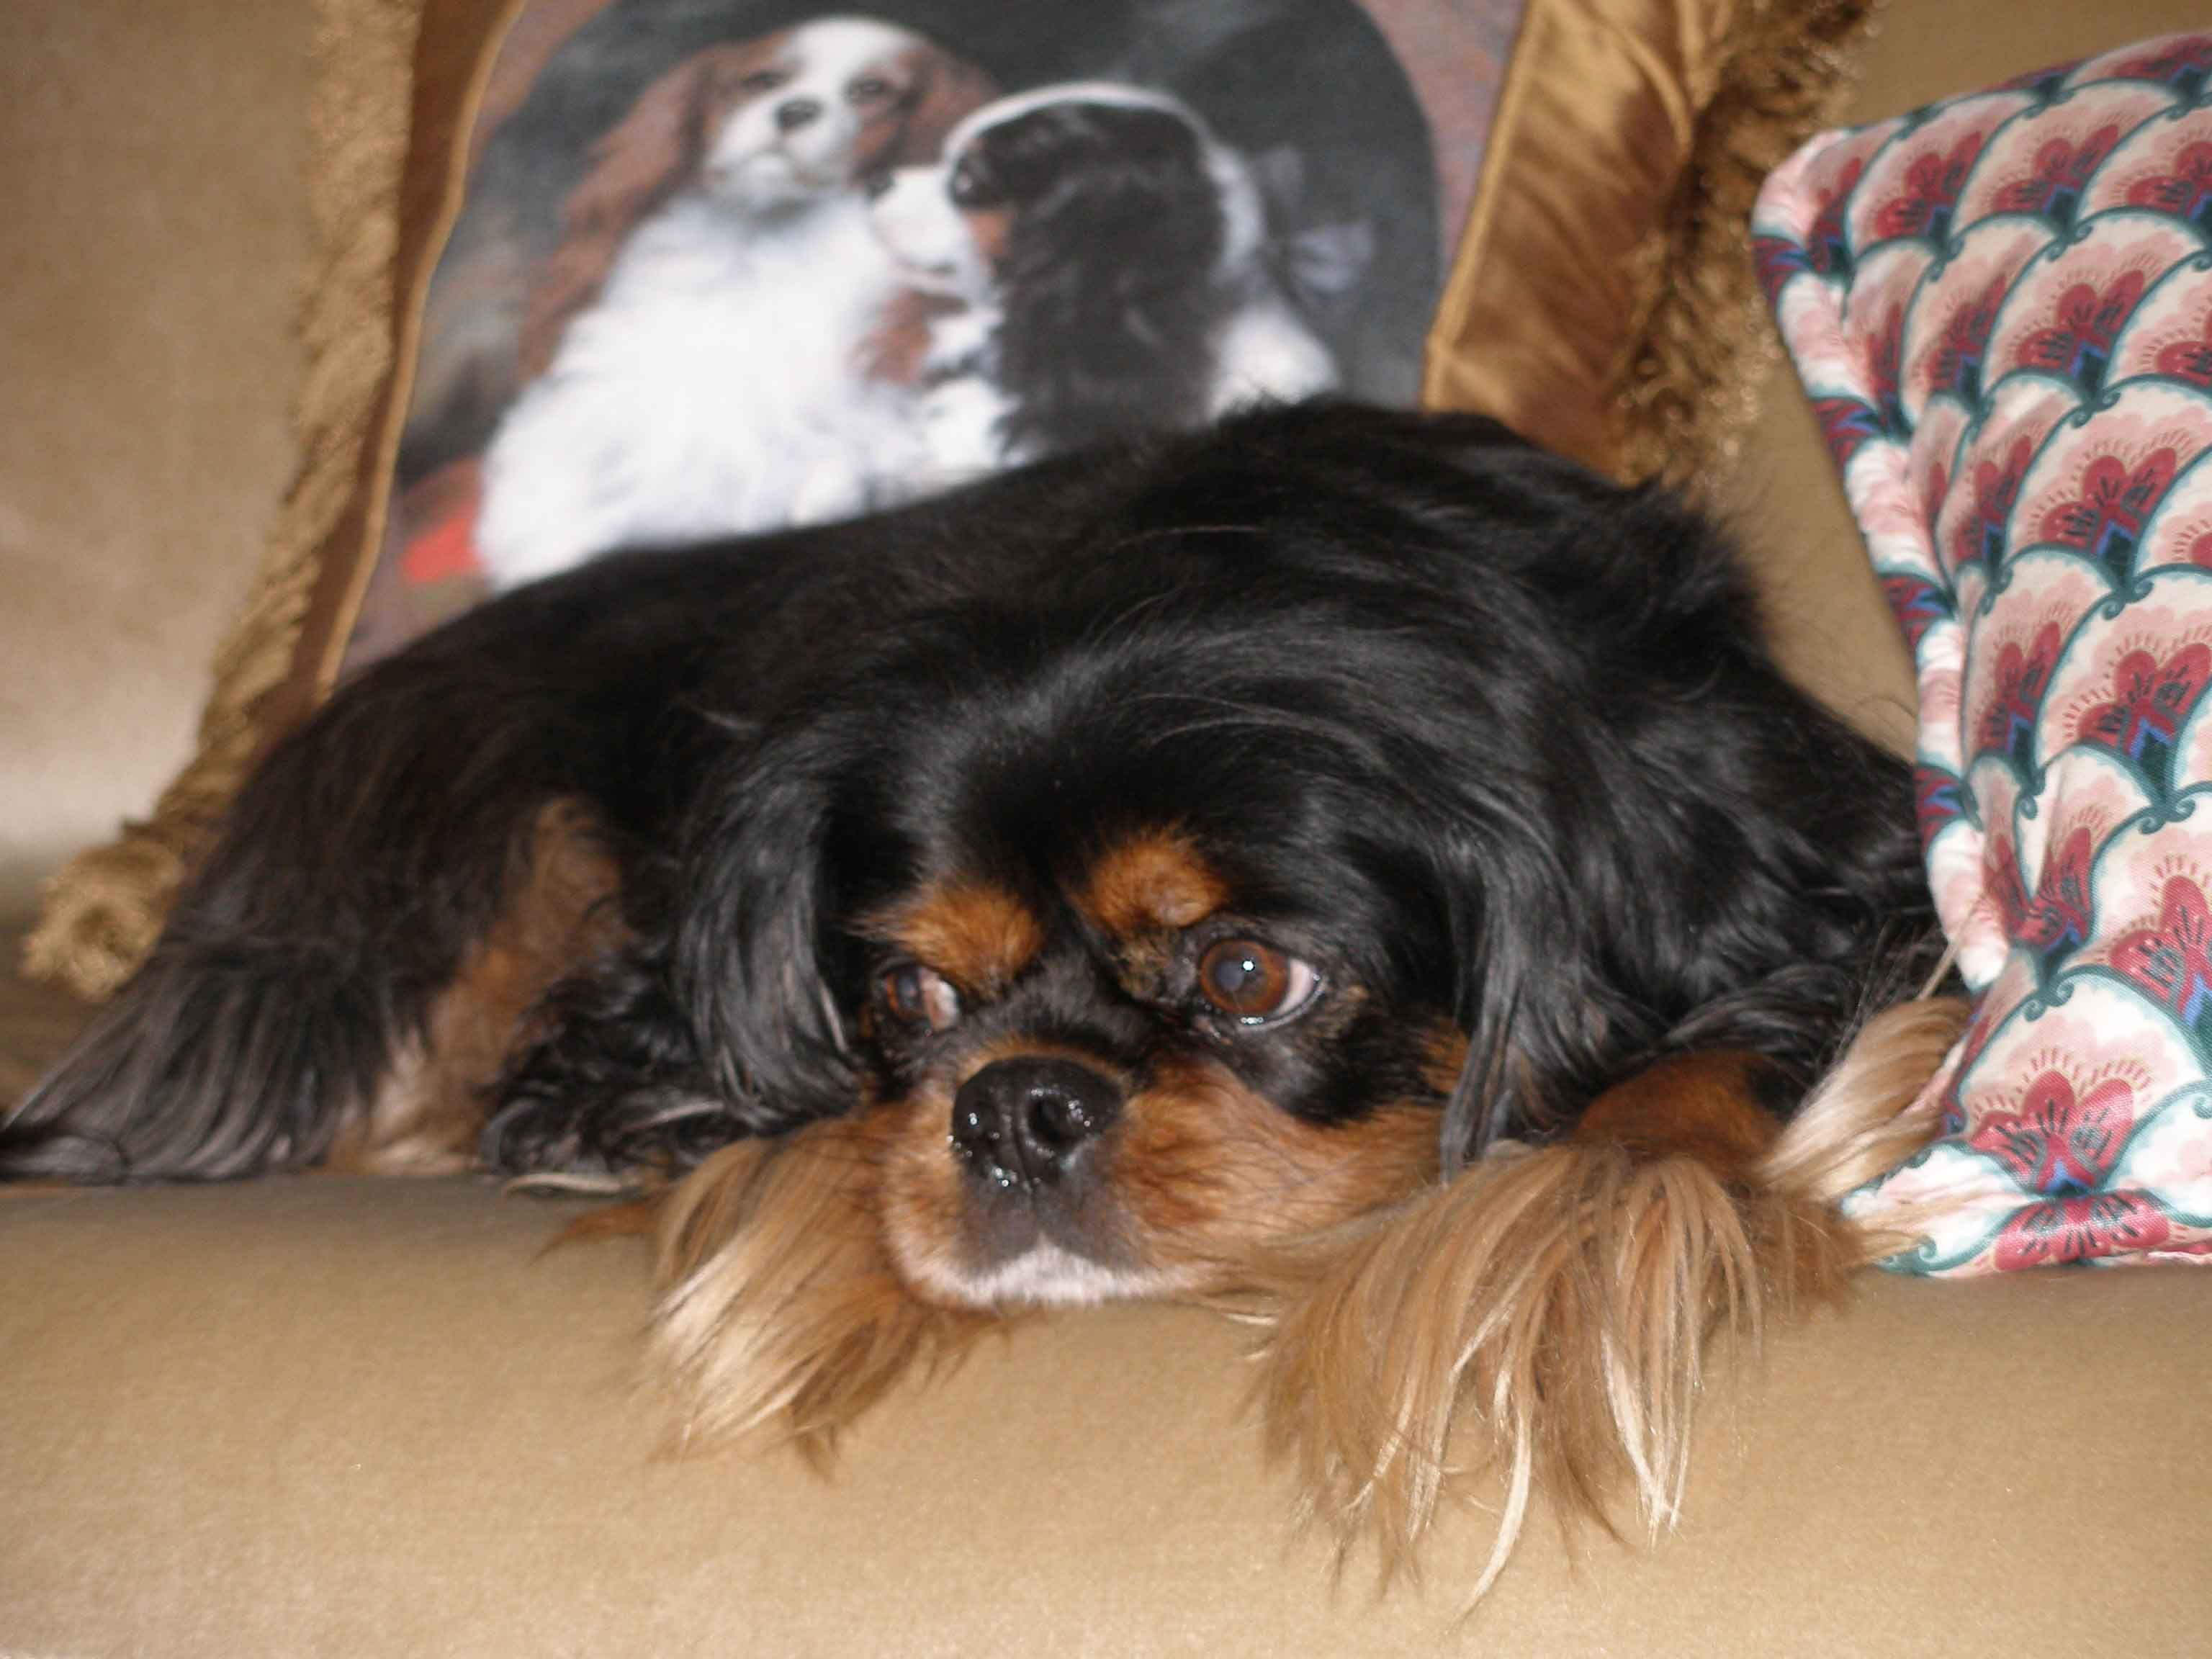 Cavalier King Charles Spaniel Black Tan The Top Ten Questions To Ask A Caval Cavalier King Charles Dog King Charles Dog King Charles Cavalier Spaniel Puppy